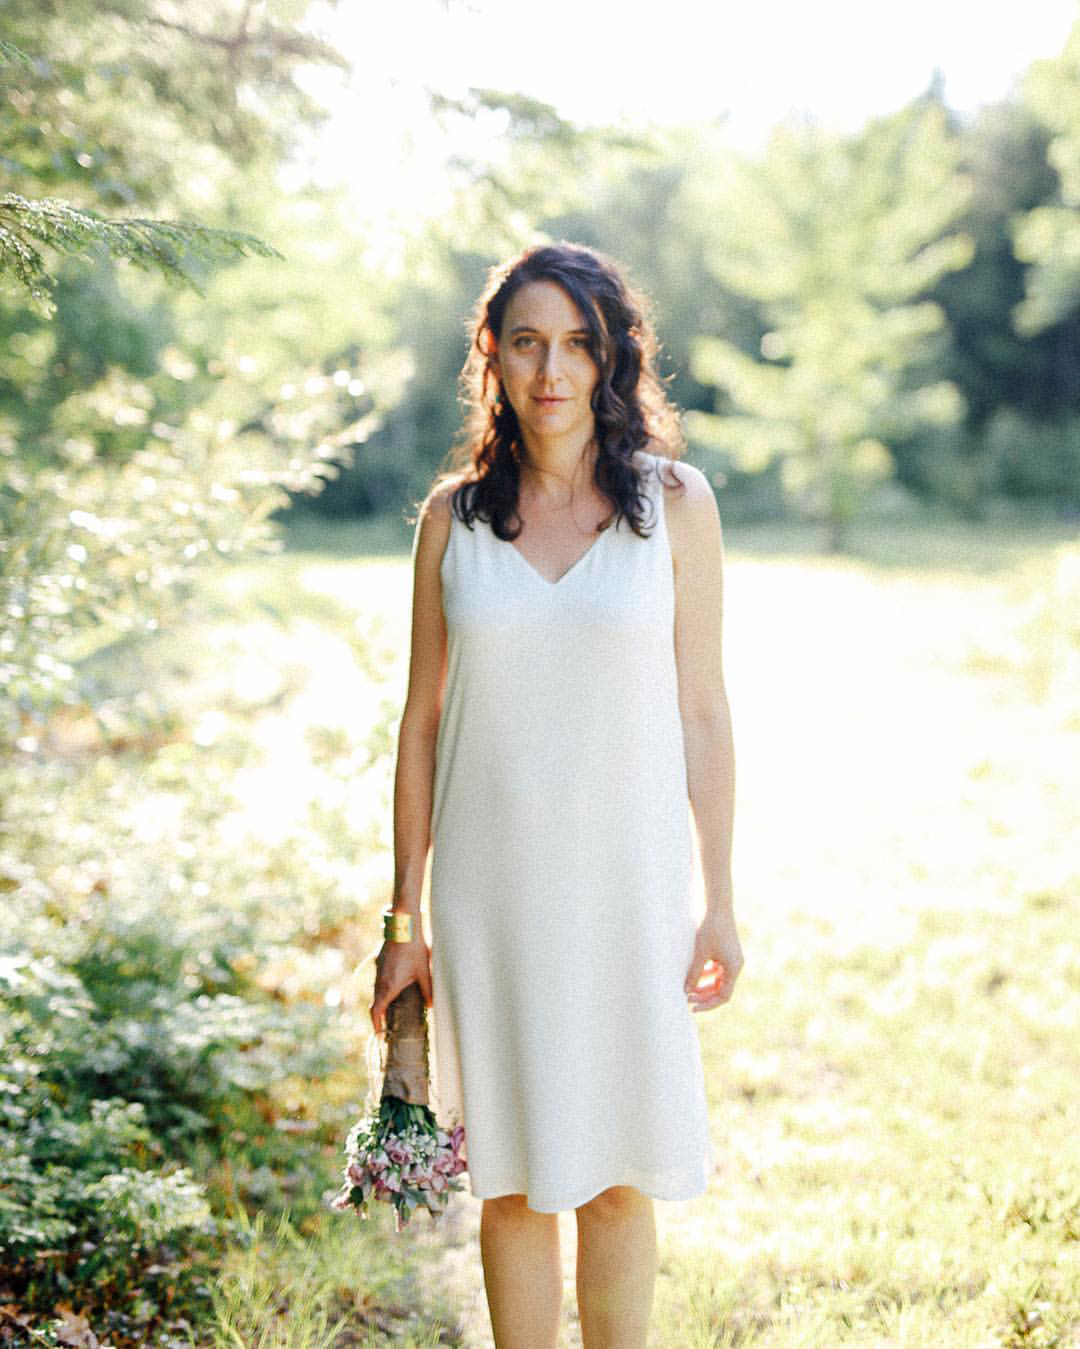 White Mountains_Fine Art Wedding Photographer_Meg Haley Photographs_067.jpg